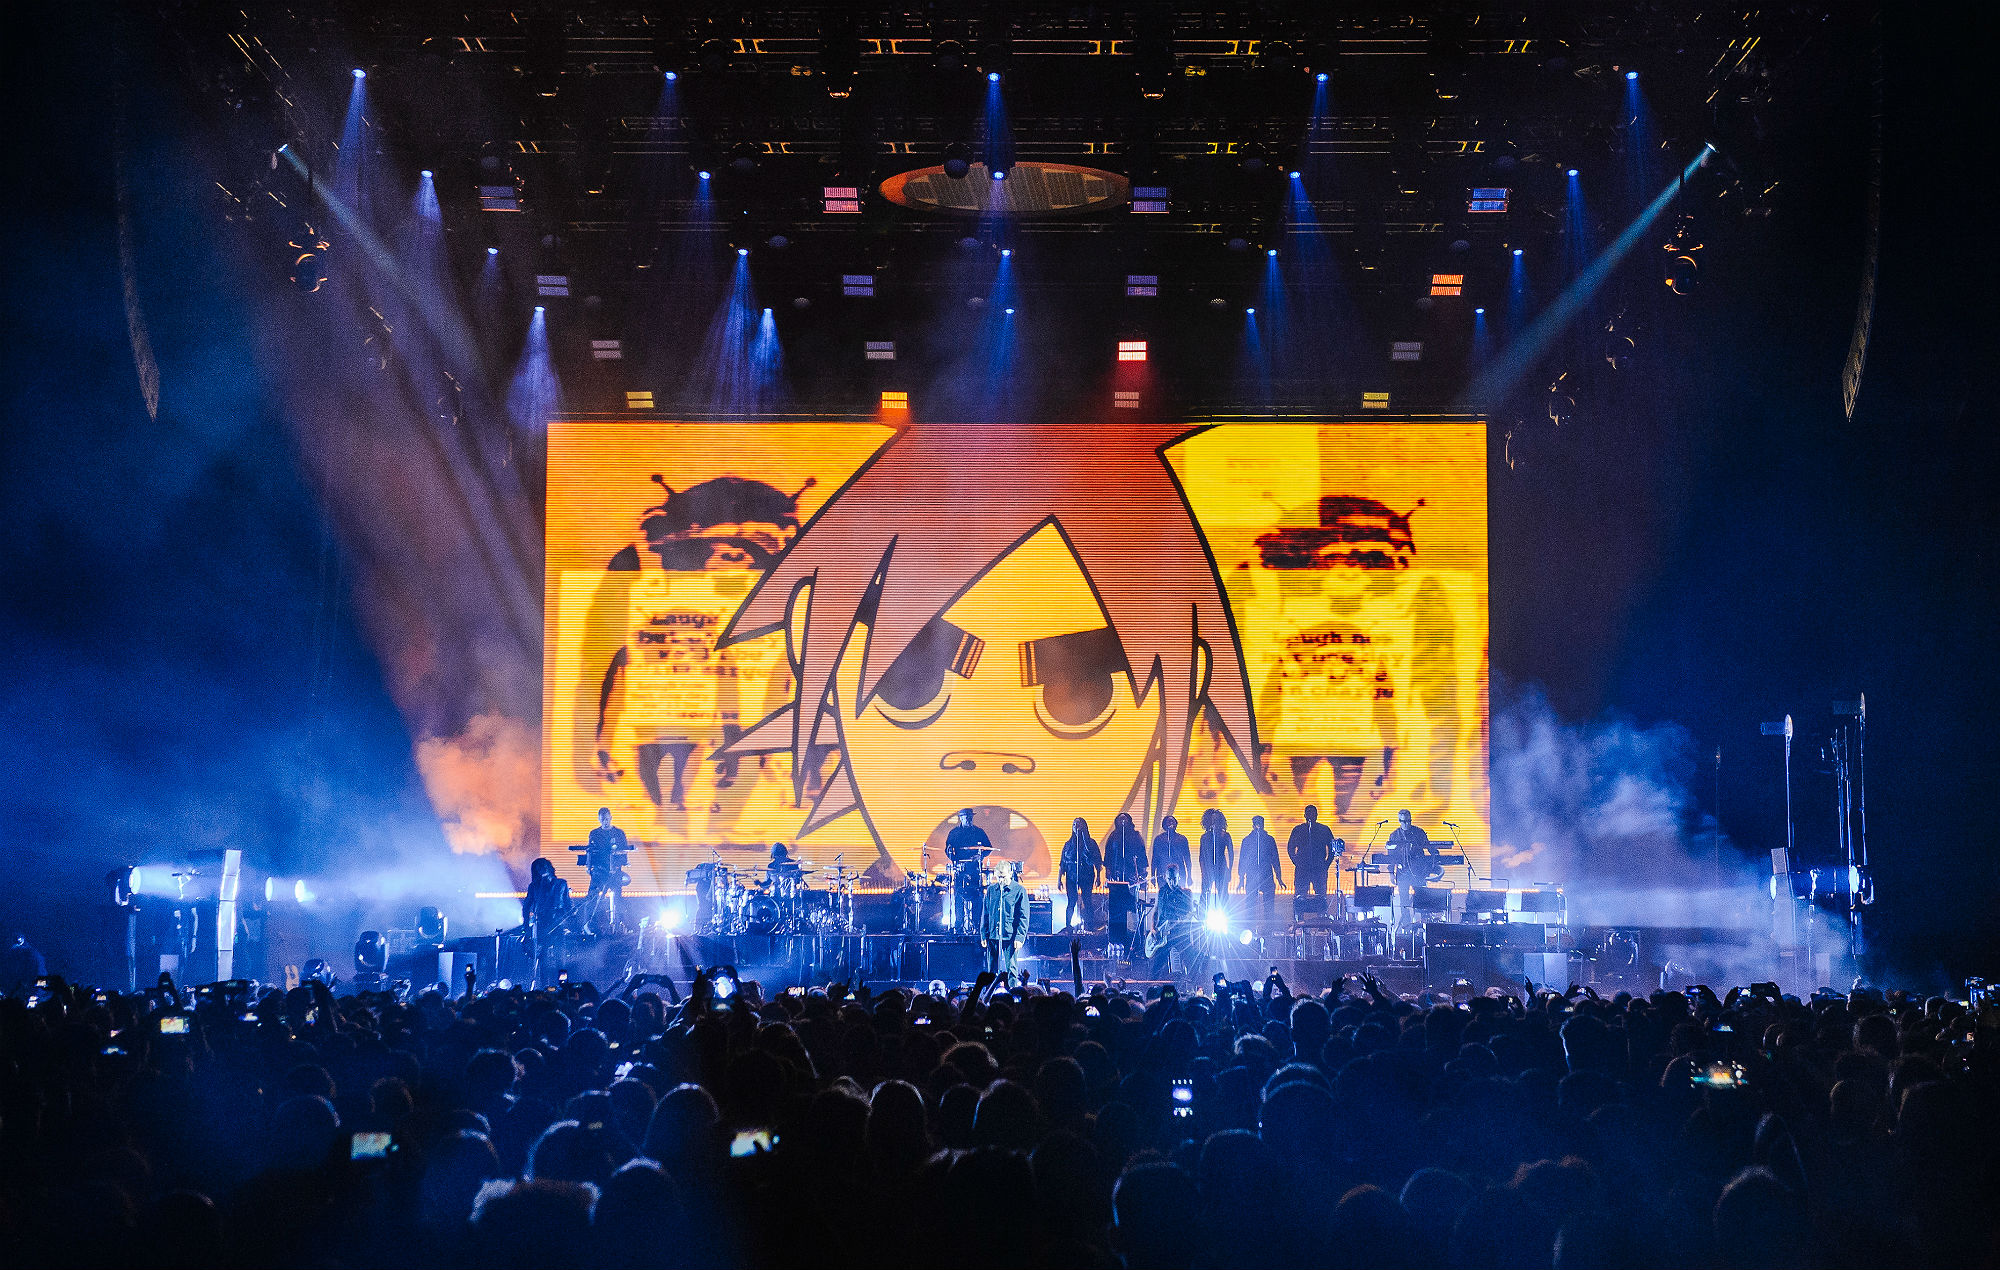 Gorillaz perform at The O2 Arena on December 5, 2017 in London, England. (Photo by Joseph Okpako/WireImage)